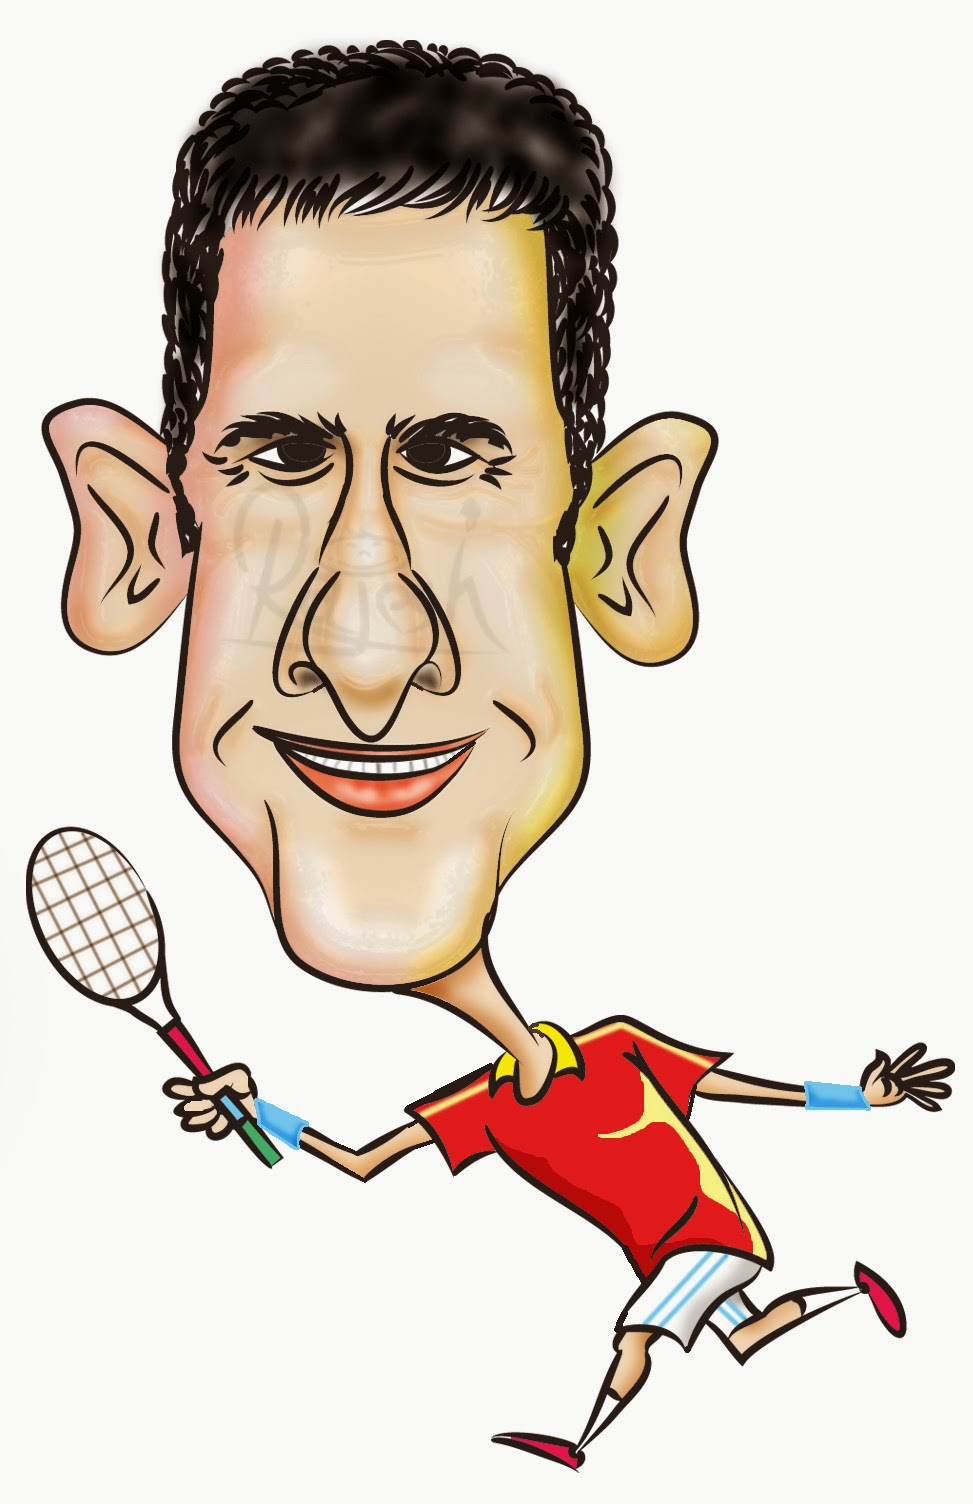 Novak Djokovic cartoon